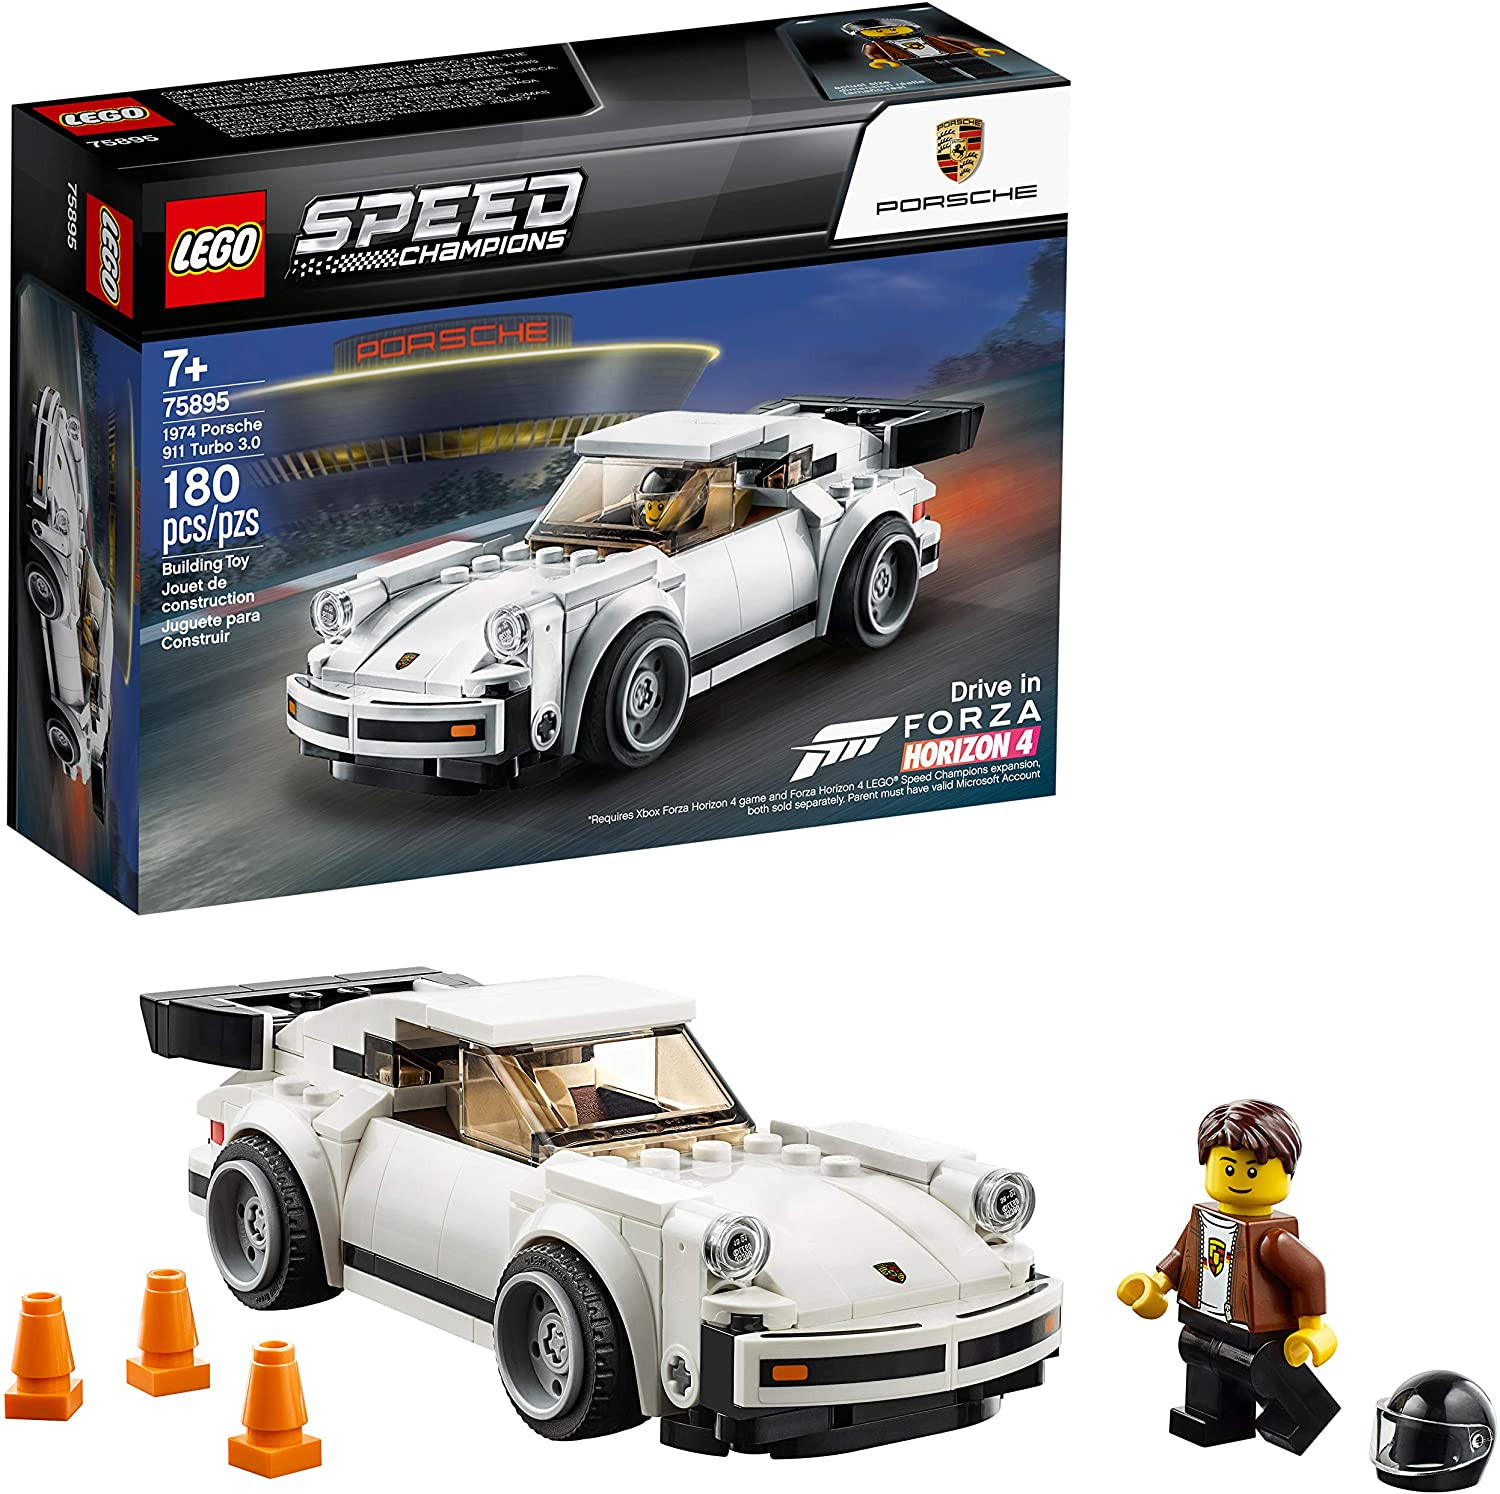 Ages 7+ 75895 Lego Speed Champions NEW 1974 Porsche 911 Turbo 3.0